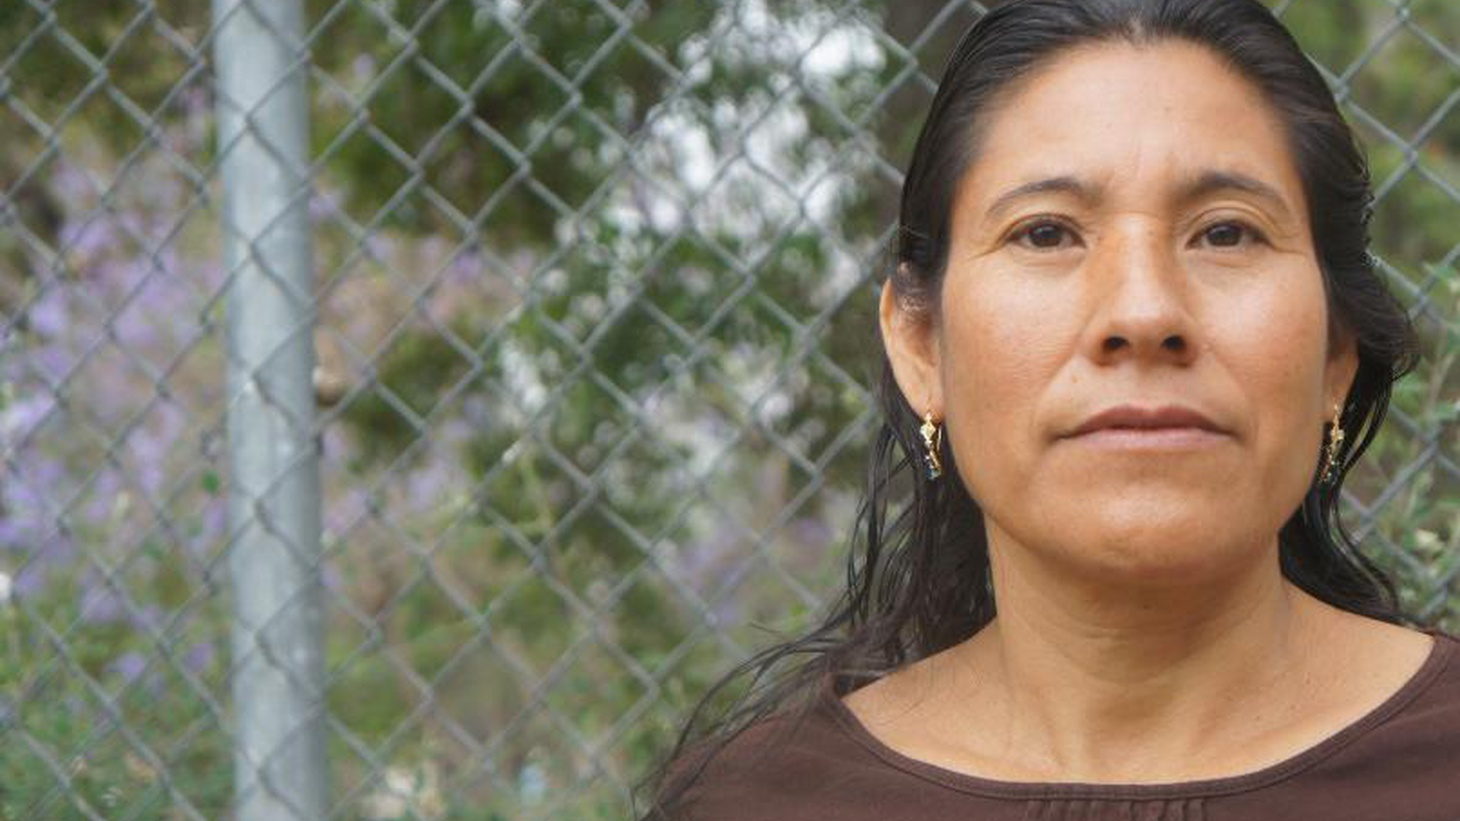 Maria Guiterrez spent over $80,000 to fix her immigration status, but it was all a legal scam.